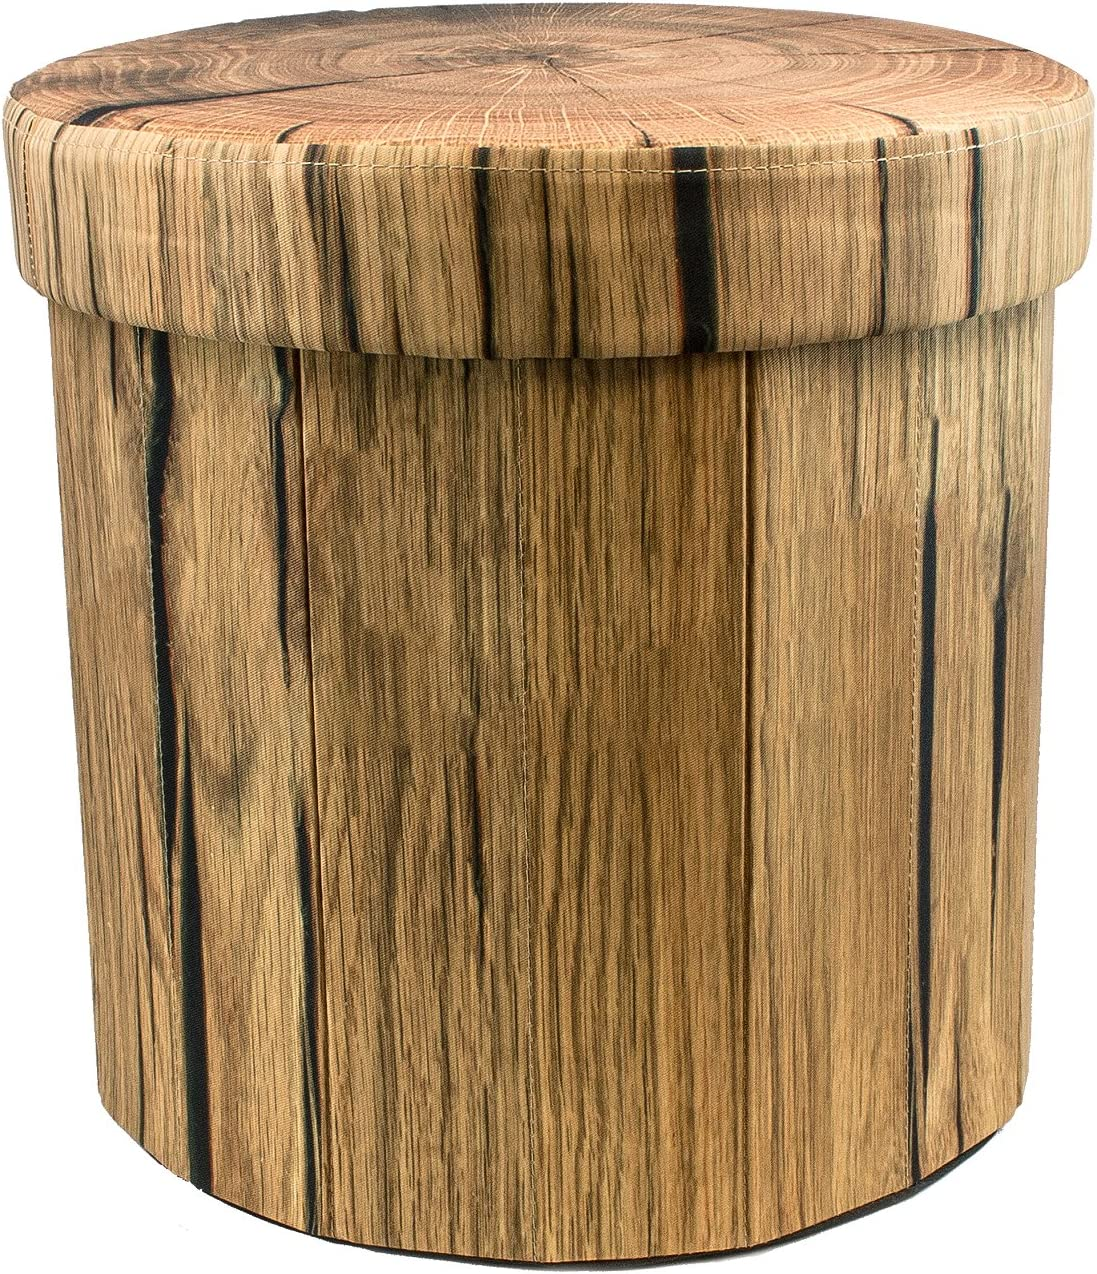 Sorbus Storage Ottoman, 15 Inch Cute 3D Play Room Stool Toy Box Foldable with Lid Perfect Footstool, Pouffe, Hassock, Strong Sturdy Space Saving Chest Tree Stump